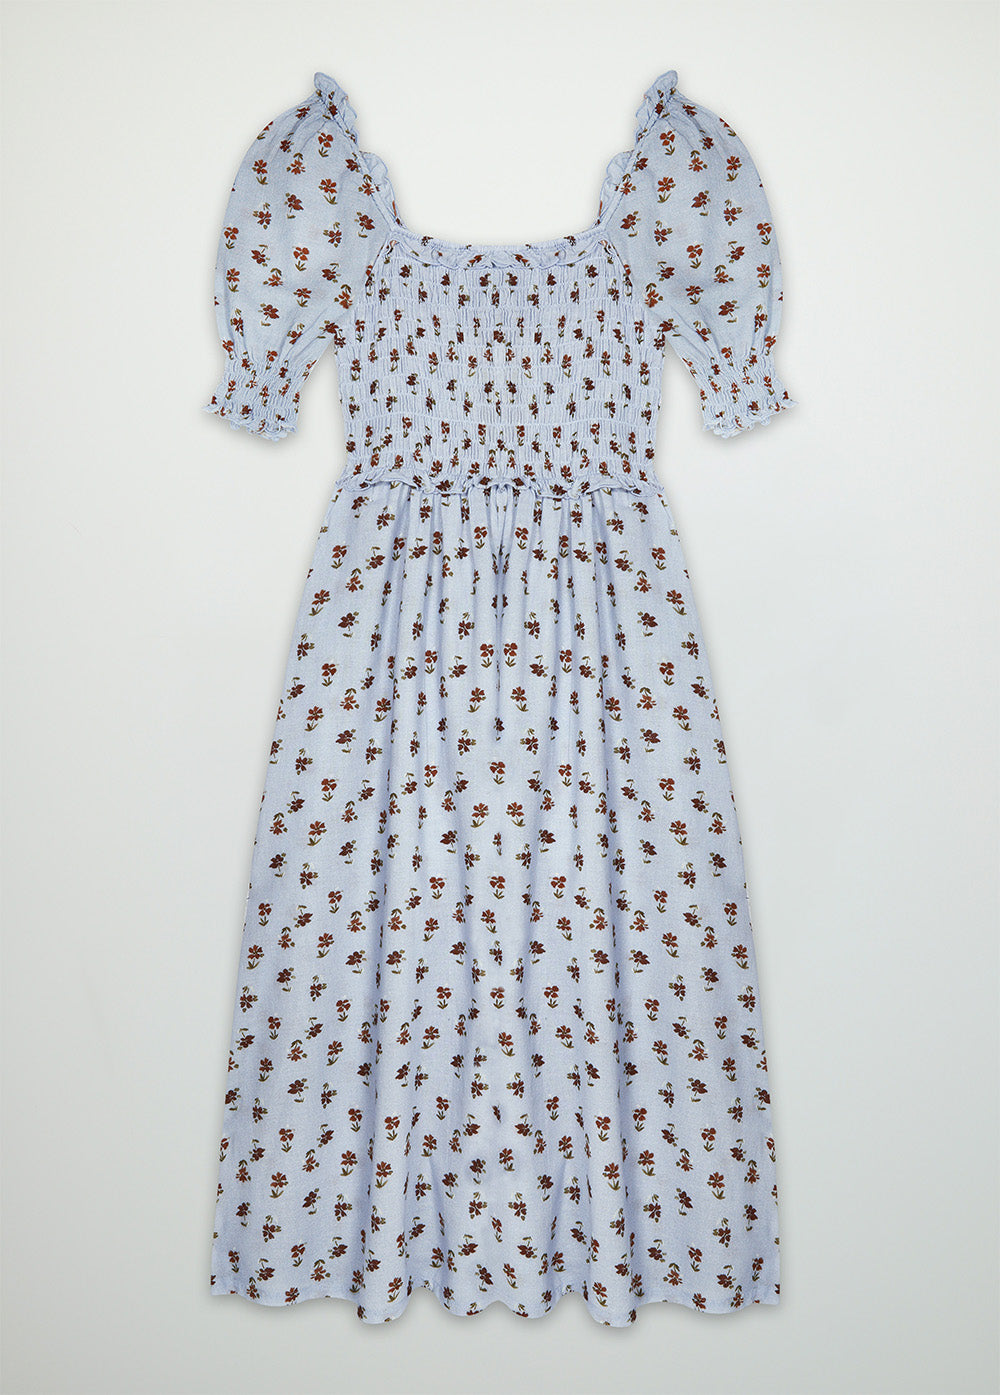 Jane woman dress